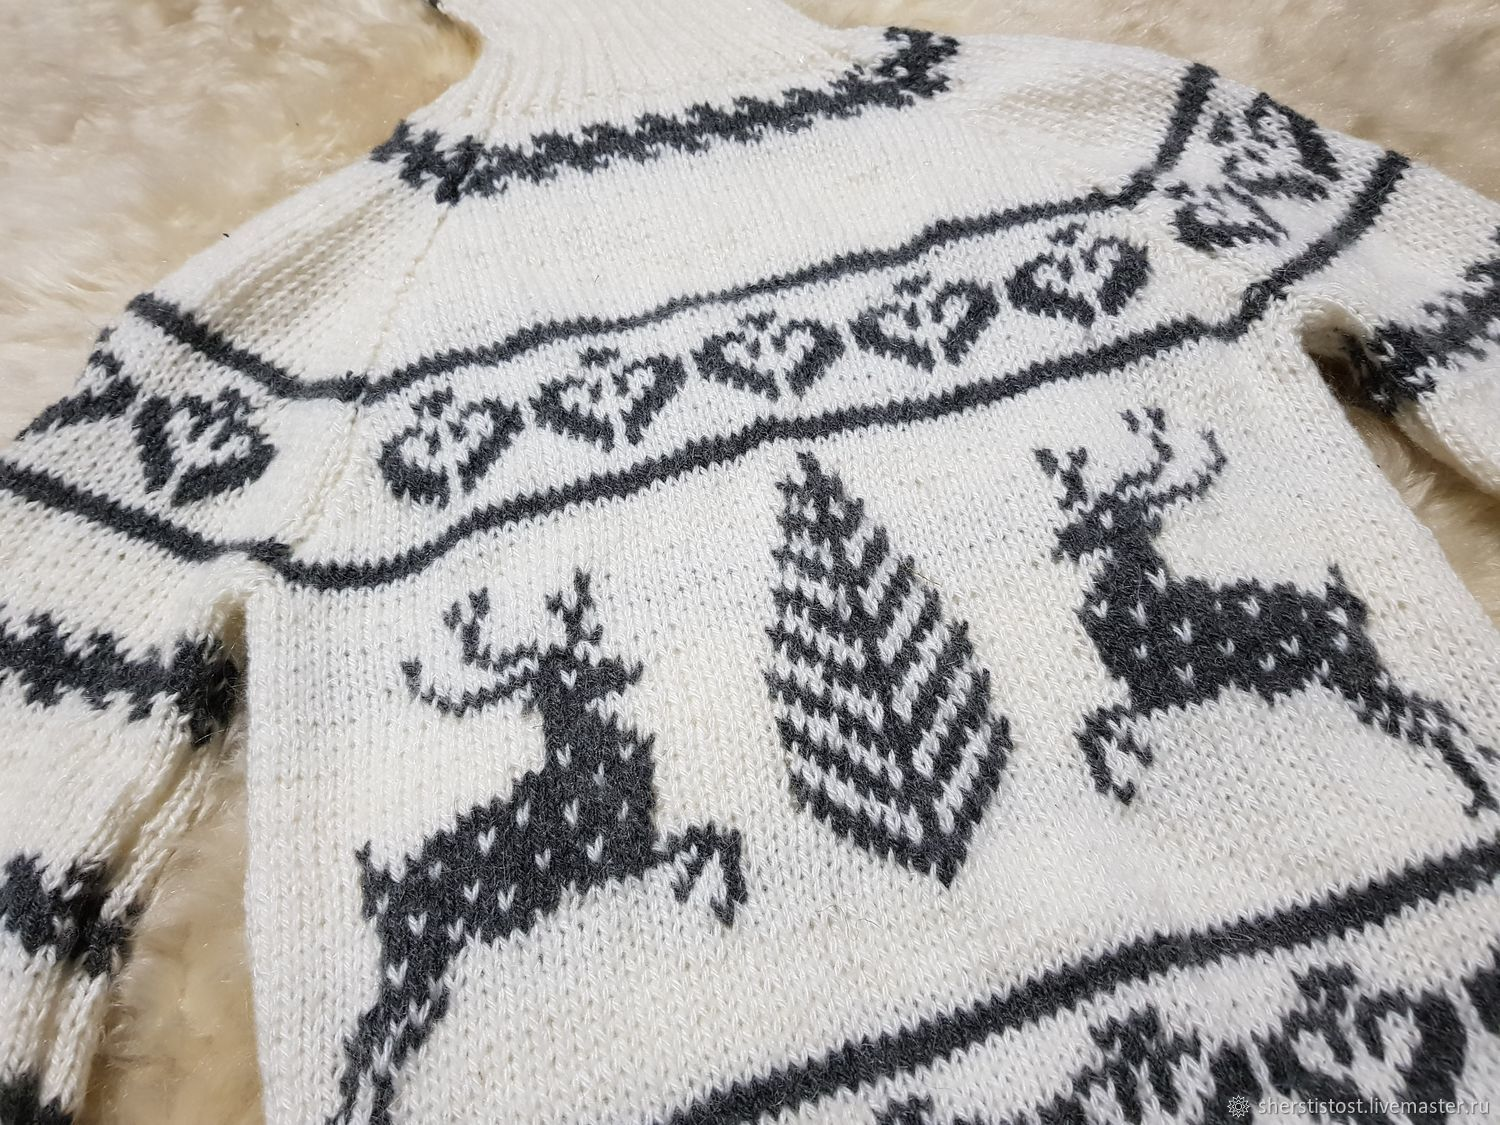 Hand Knitted Sweater Shop Online On Livemaster With Shipping